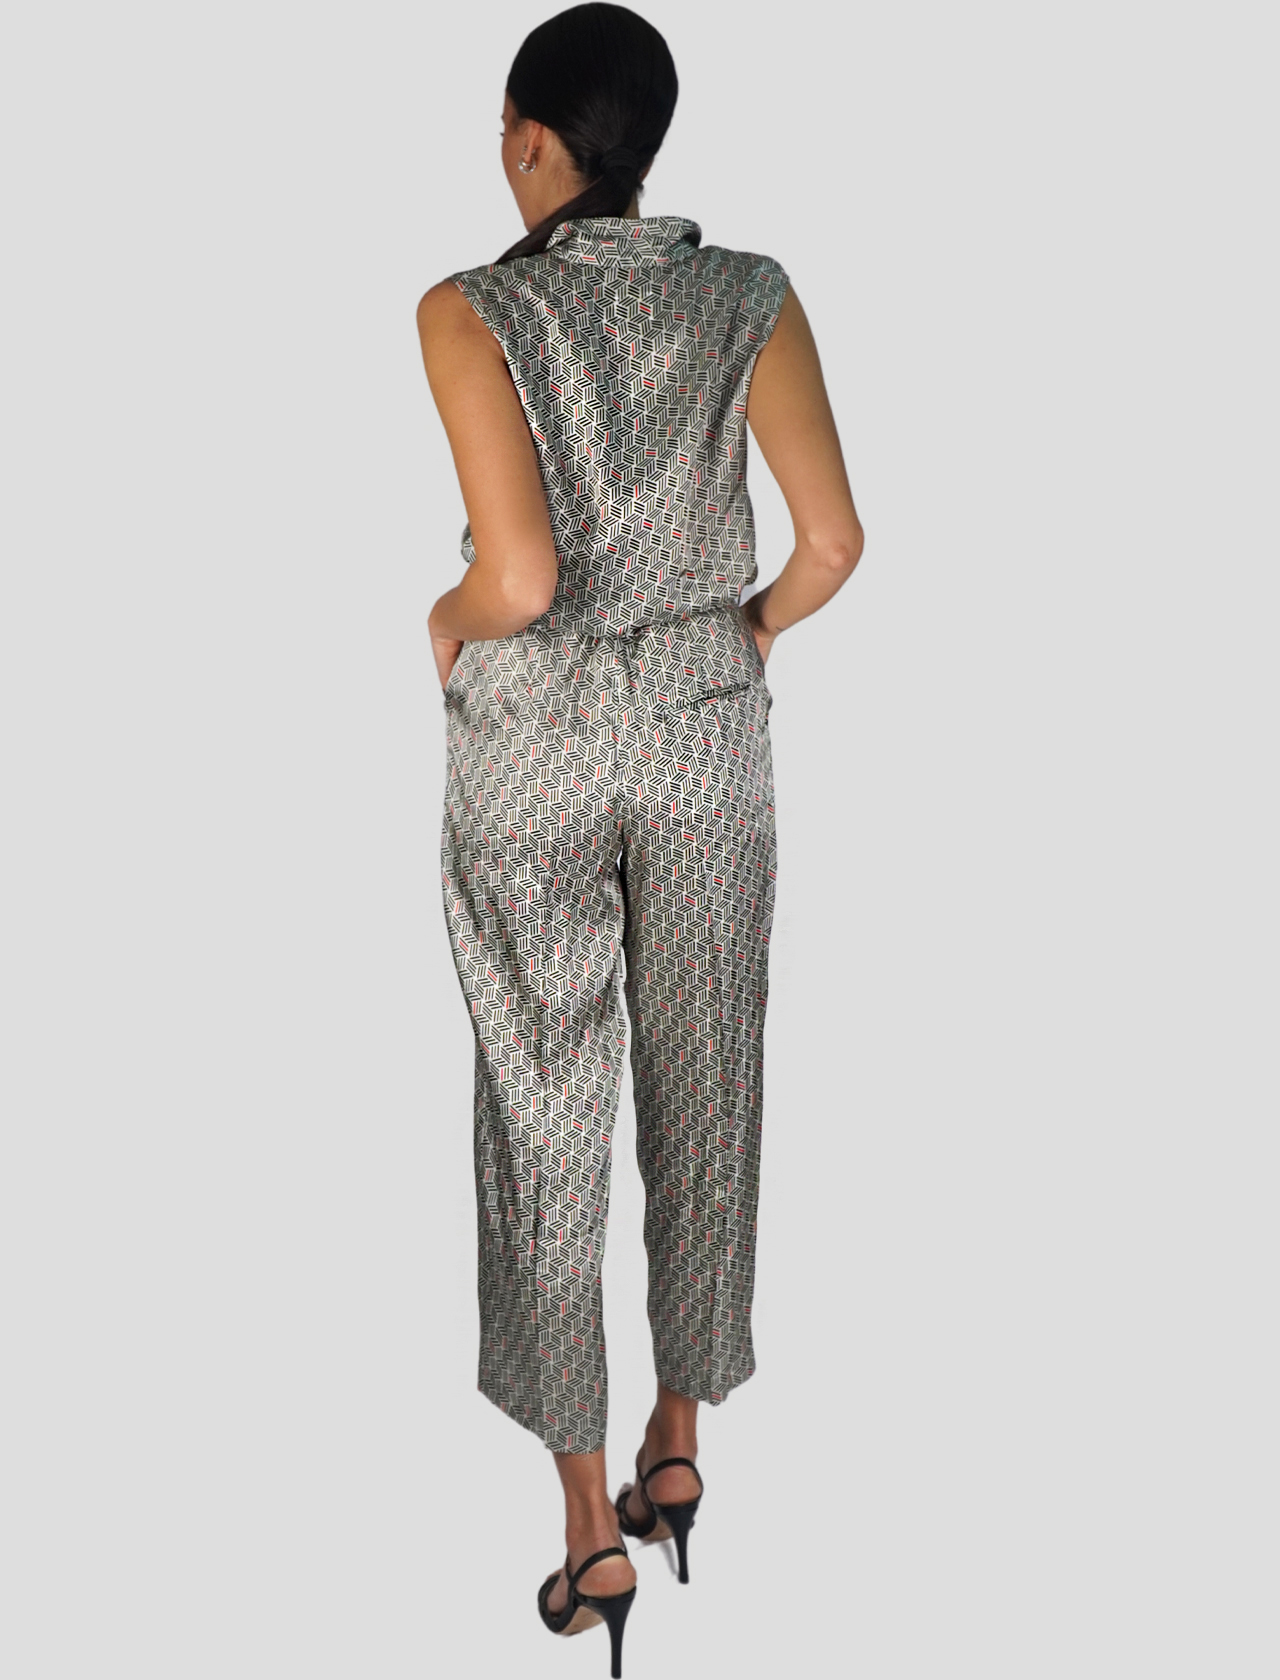 Women's Clothing Dress Long Armhole Suit in Black and White Pattern Mercì |  | TD044900